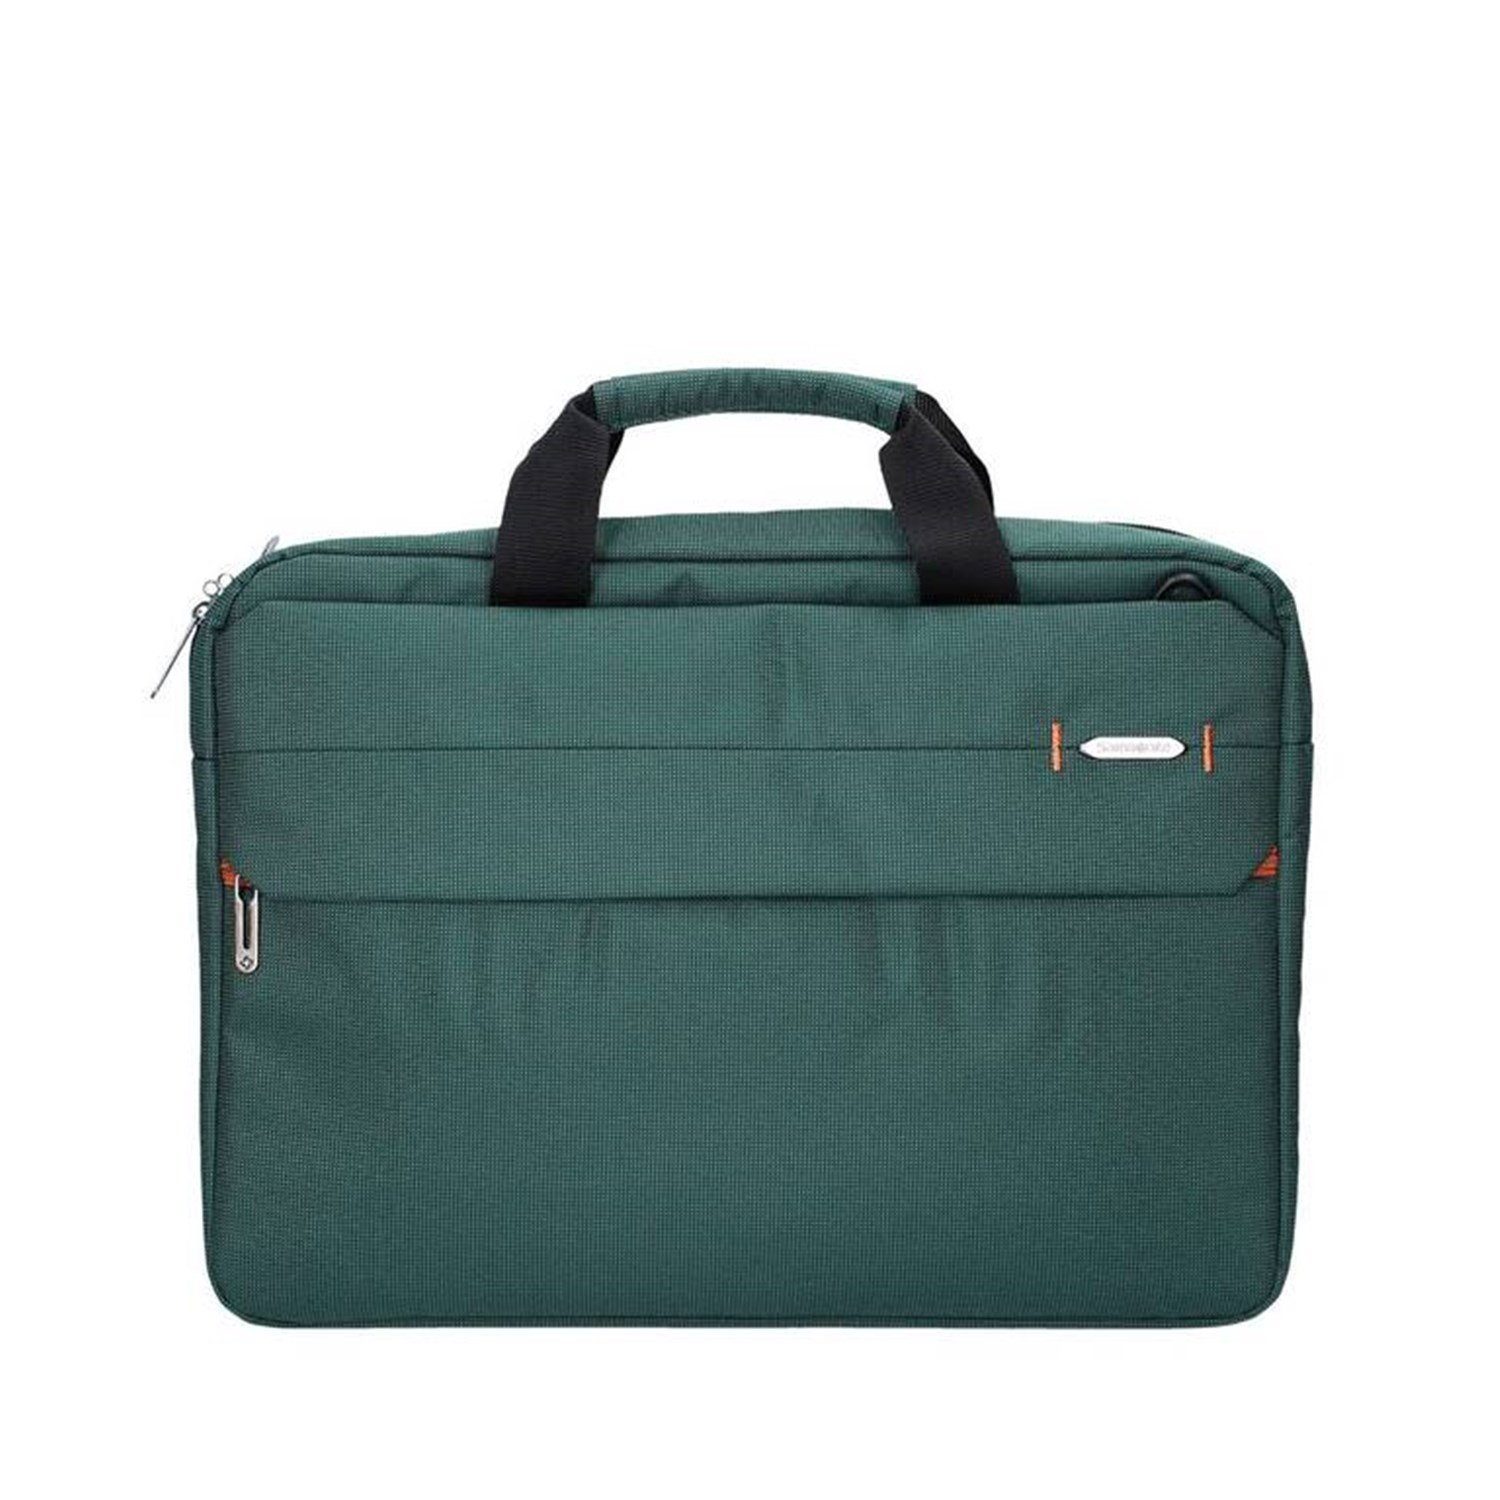 Samsonite Bags Accessories To work GREEN CC8004003